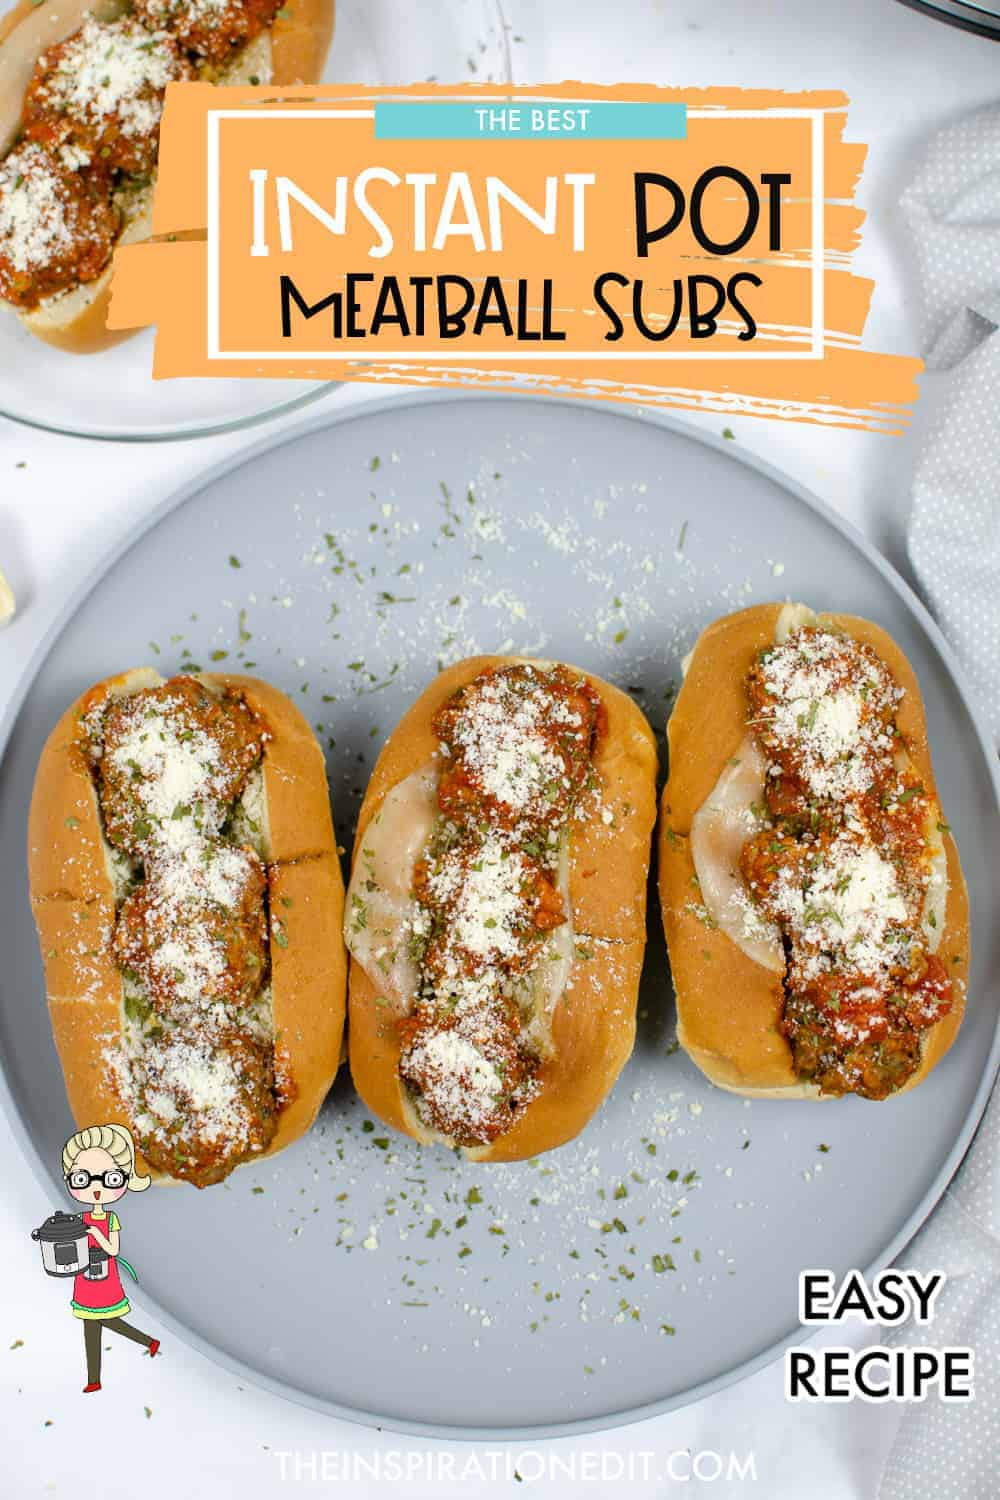 INSTANT-POT-MEATBALL-SUBS-1-1